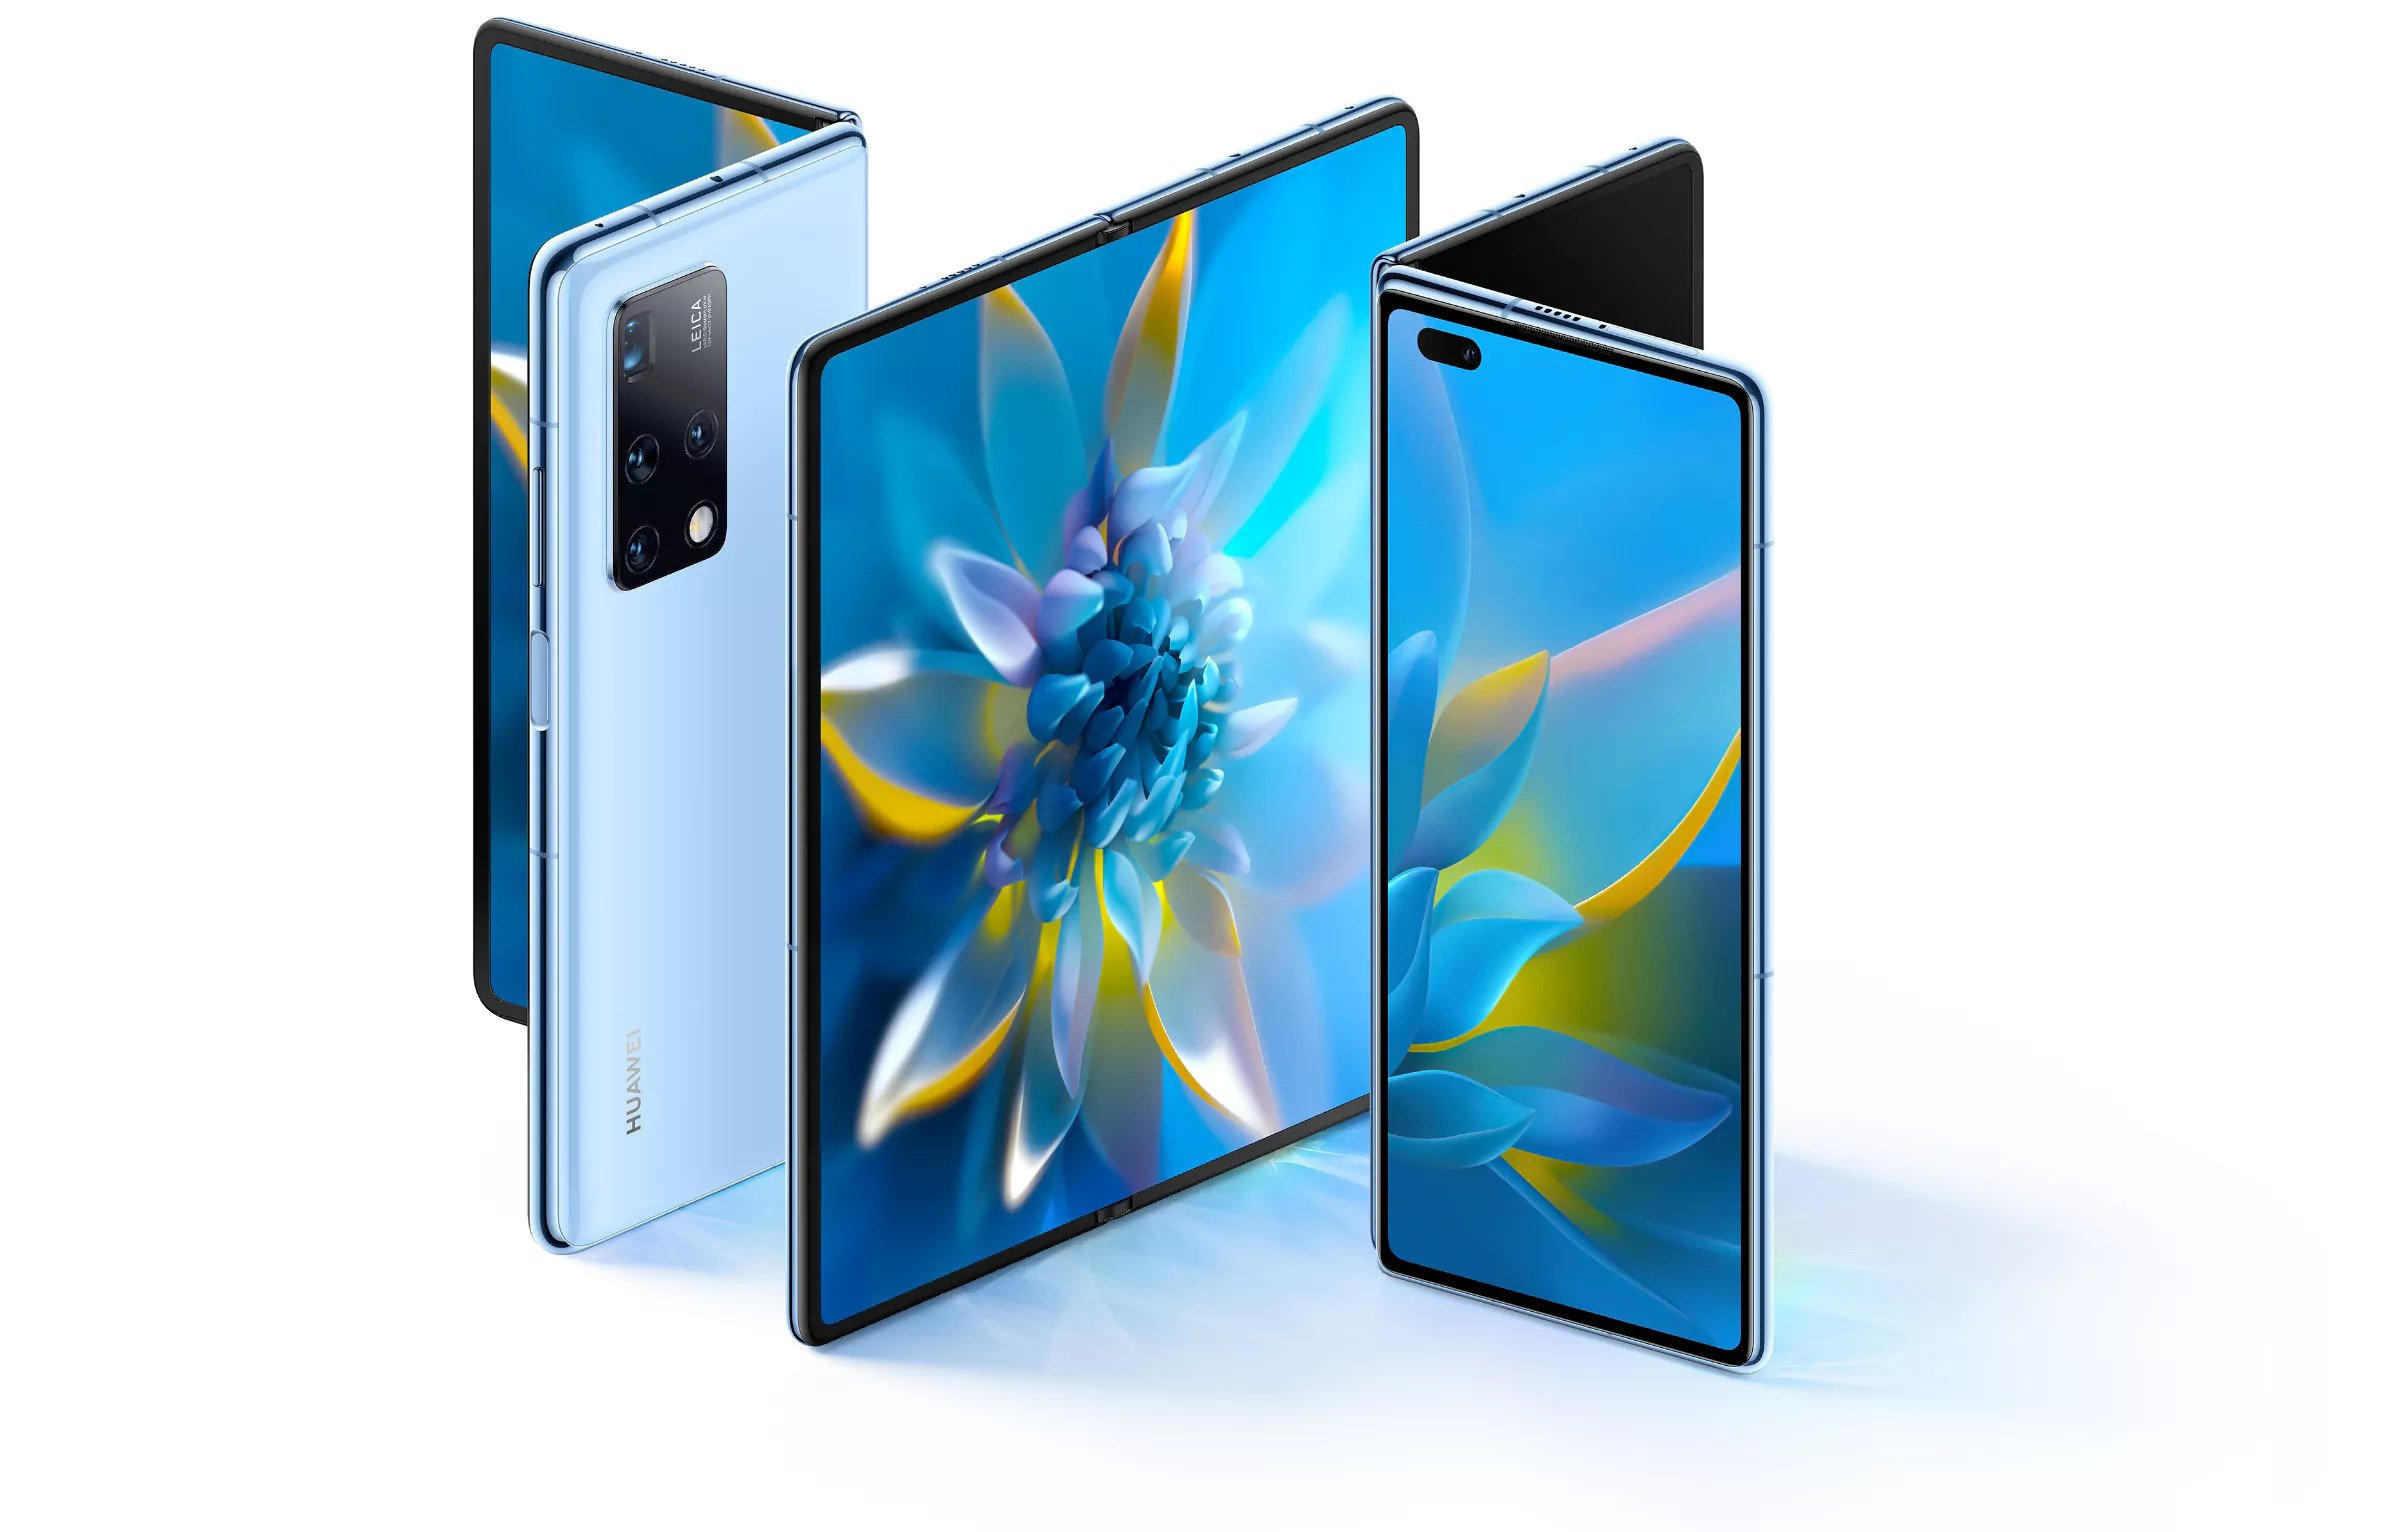 Huawei's new folding phone costs as much as a used car and still doesn't have a real app store - Android Police